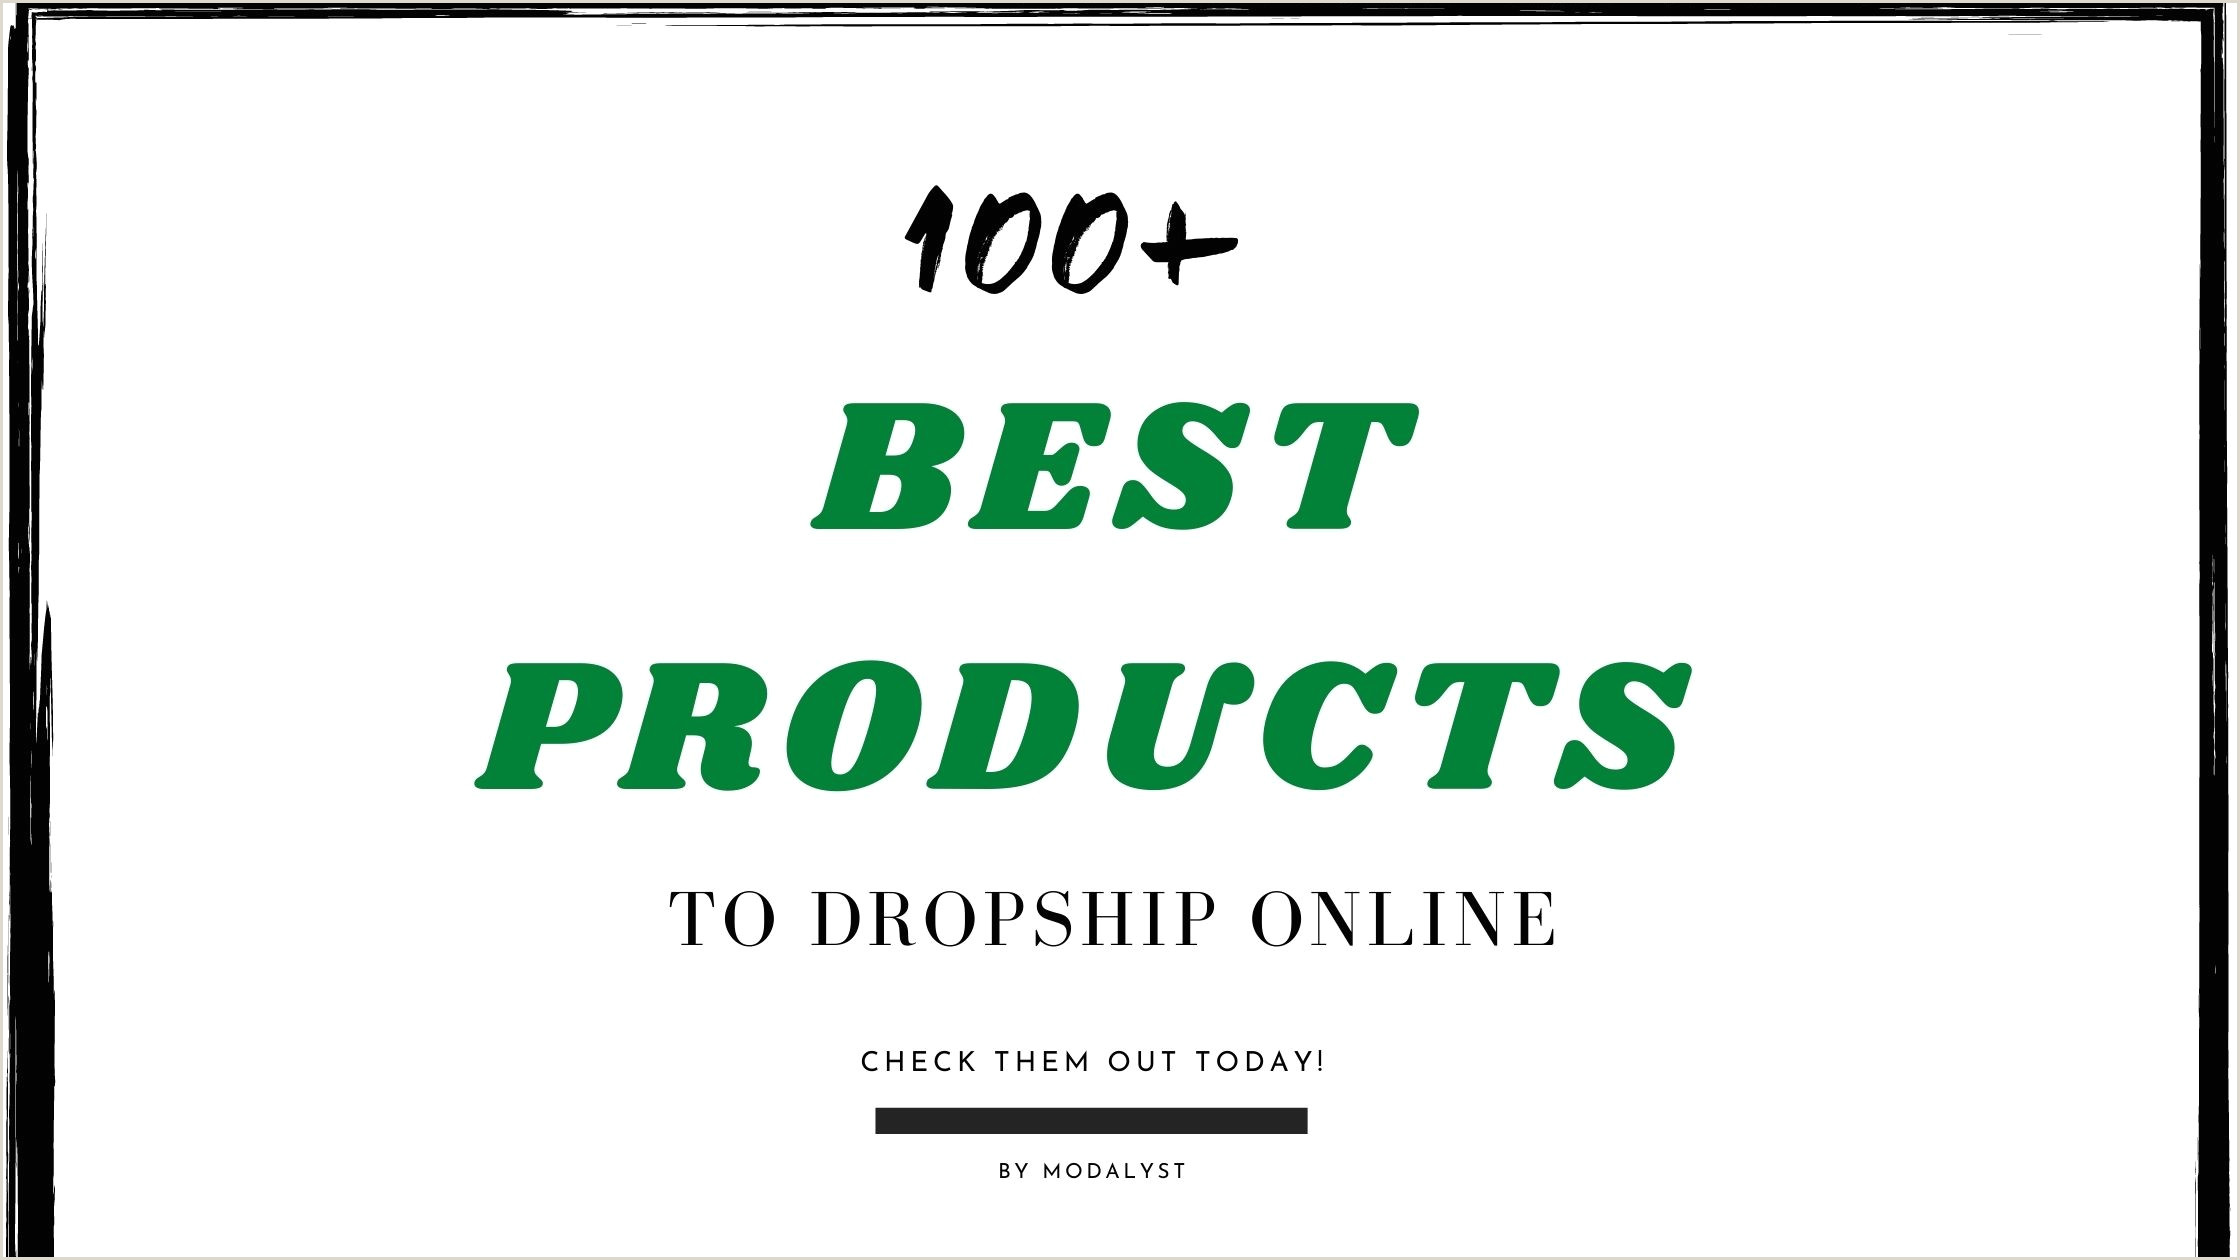 Buisness Card Ideas 100 Best Products To Dropship In 2020 Modalyst